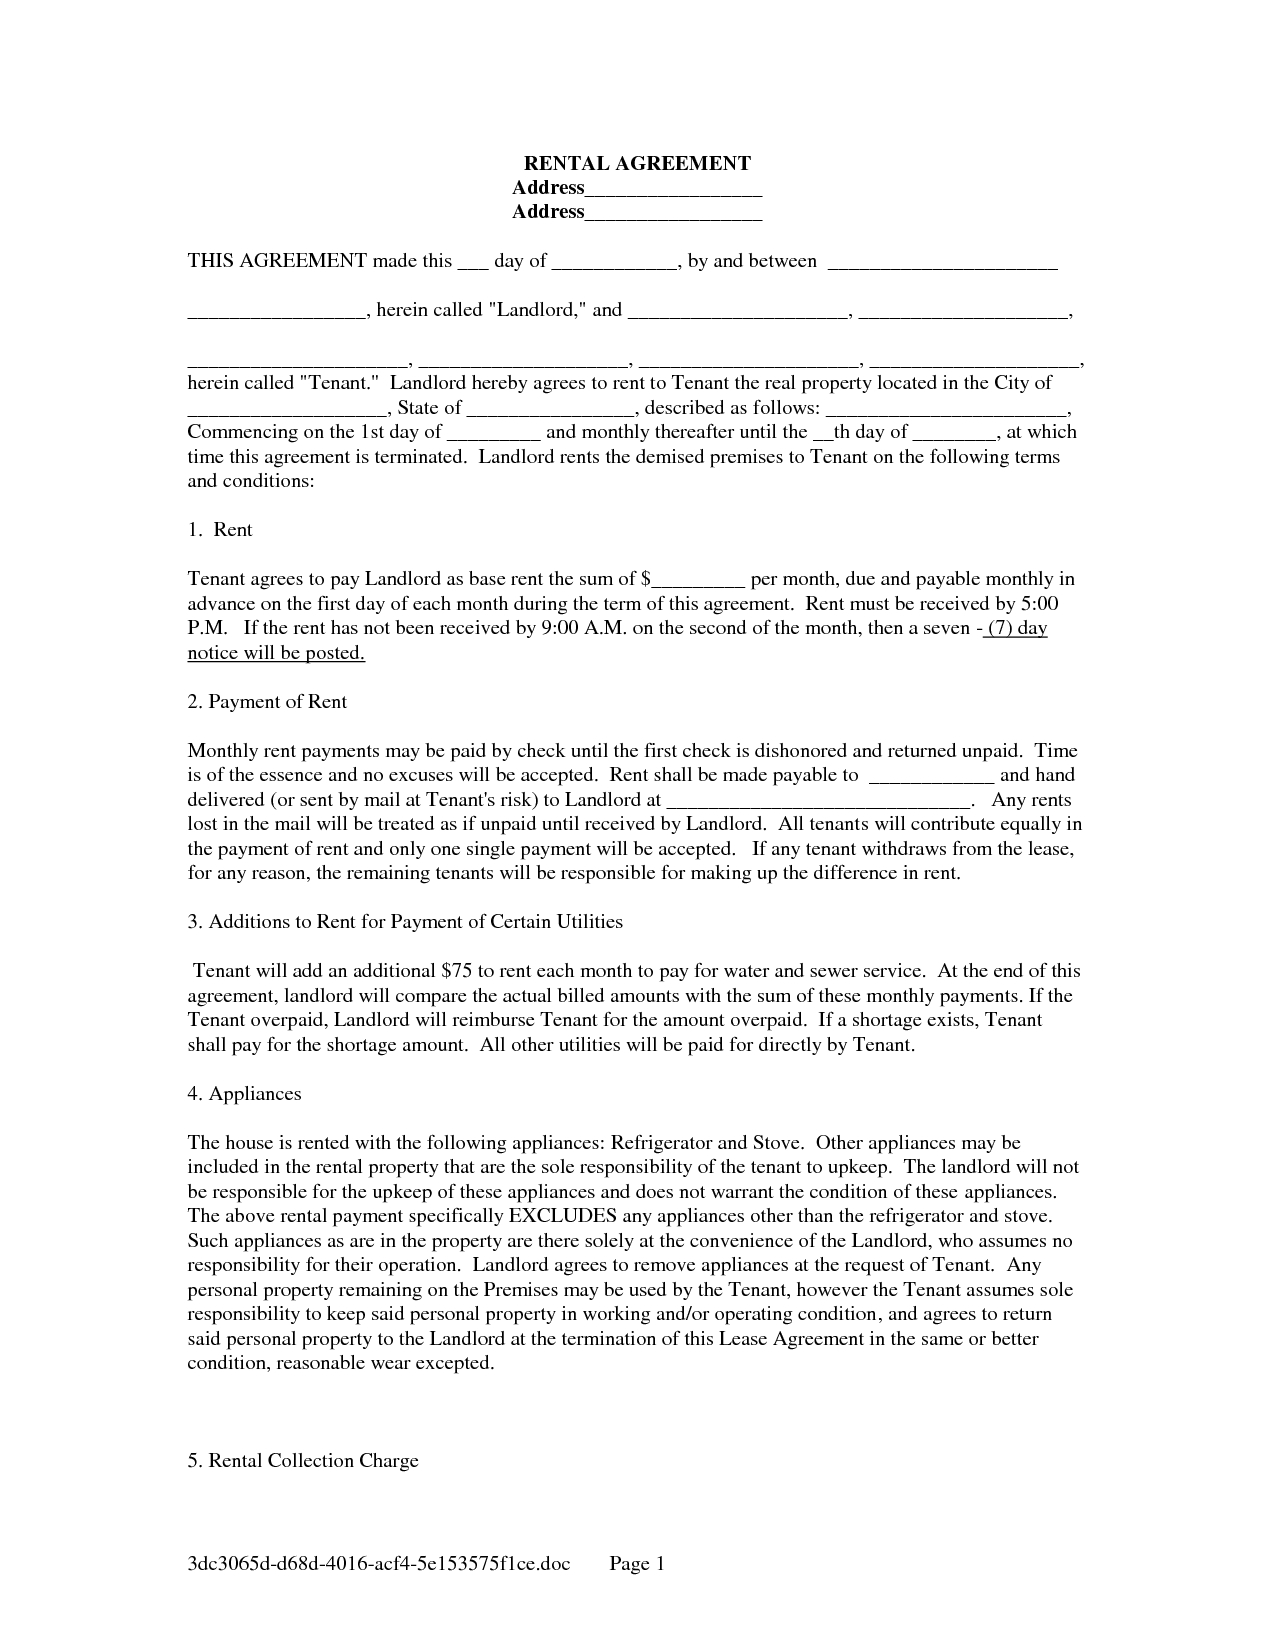 Property California Rental Agreement Template Free | Property - Blank Lease Agreement Free Printable